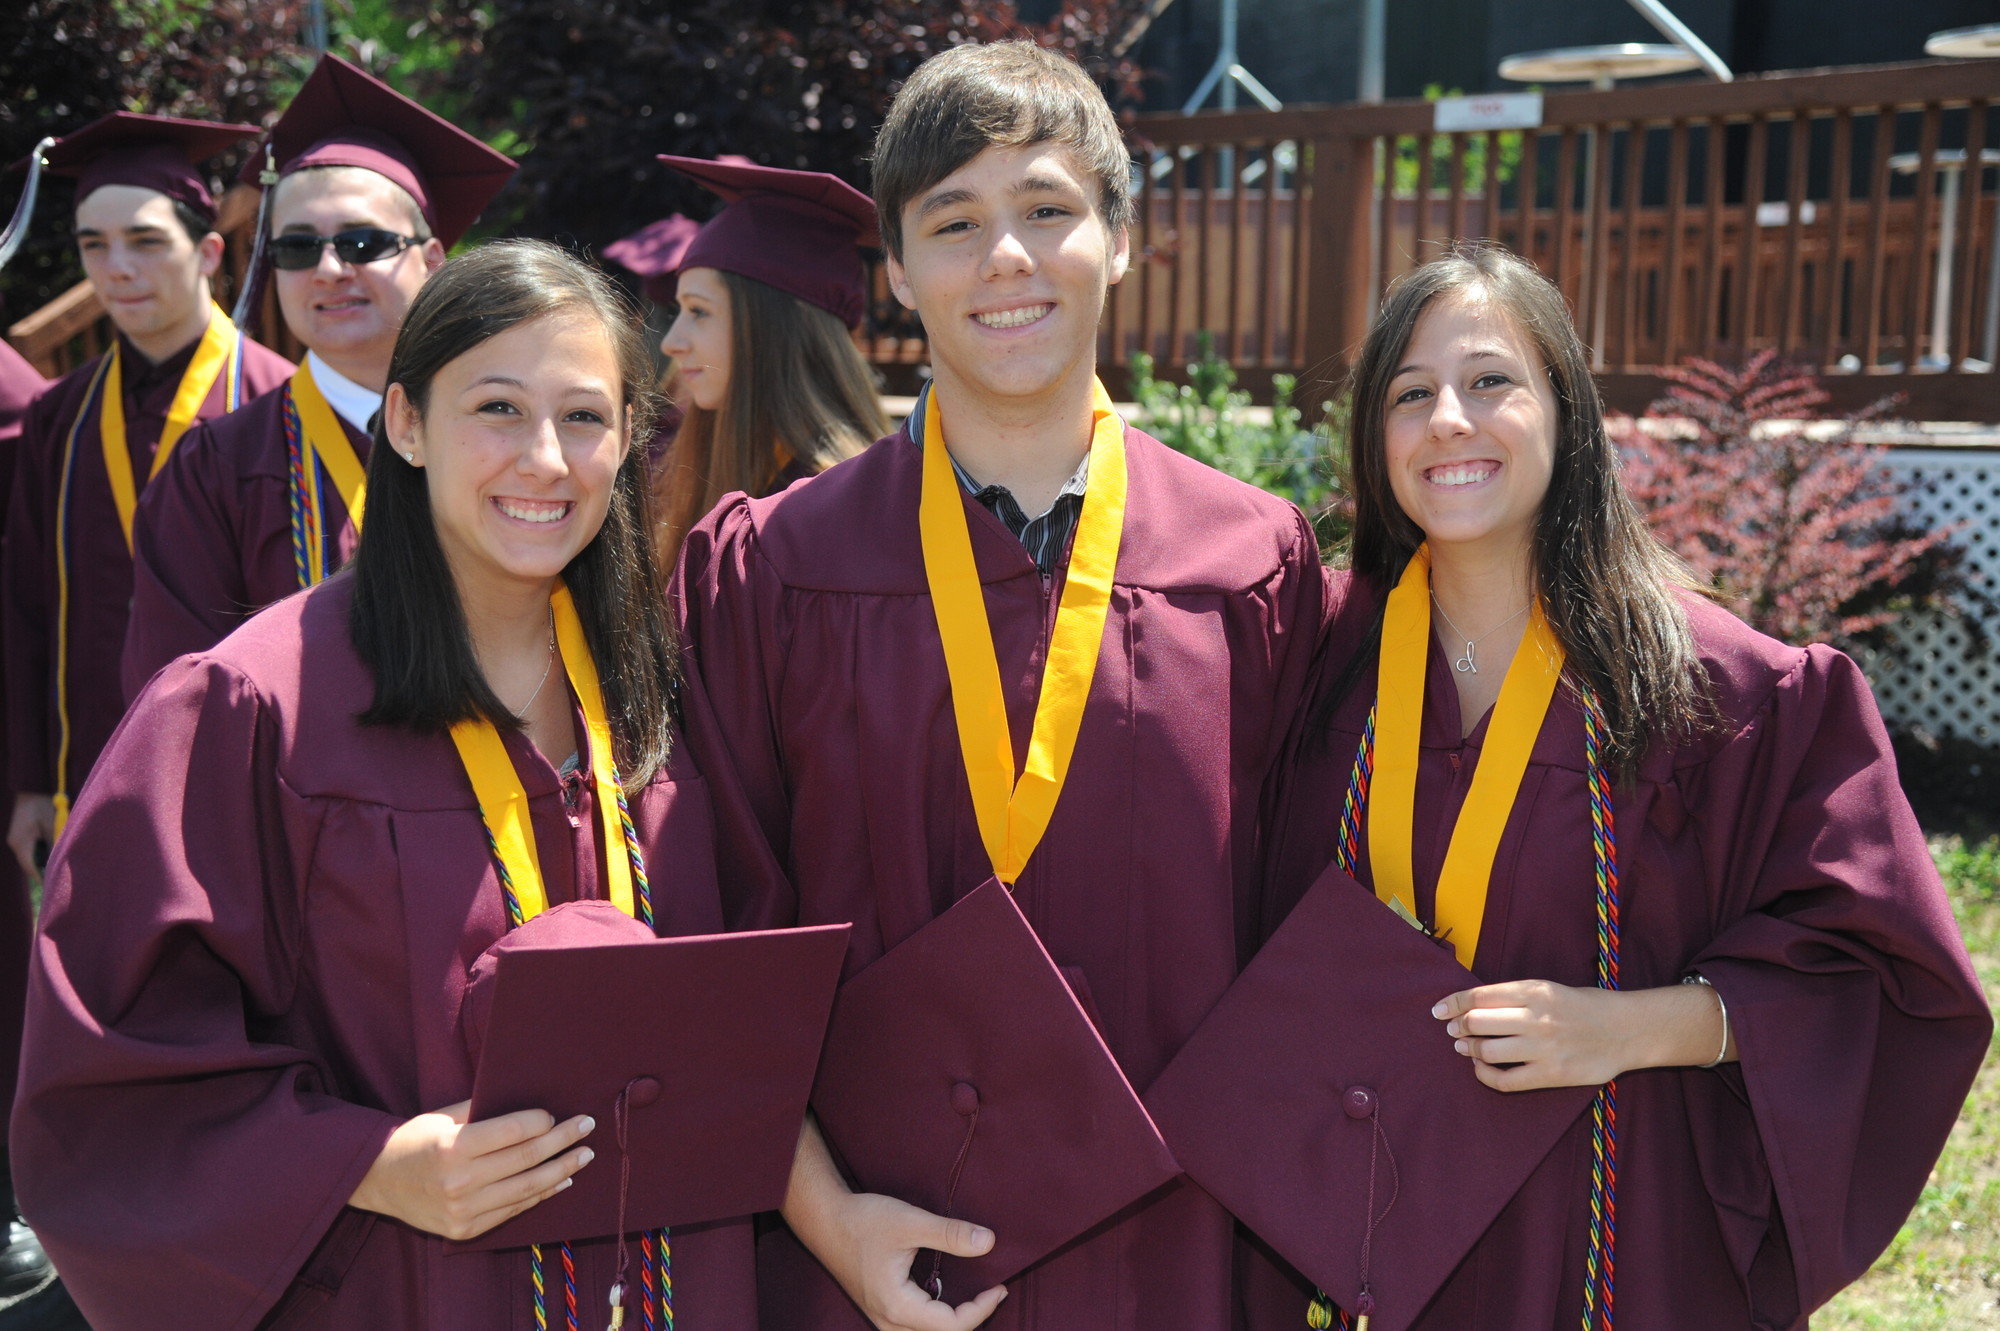 Mepham's commencement was a family affair for triplets Jennifer, Alex and Danielle Schulman.